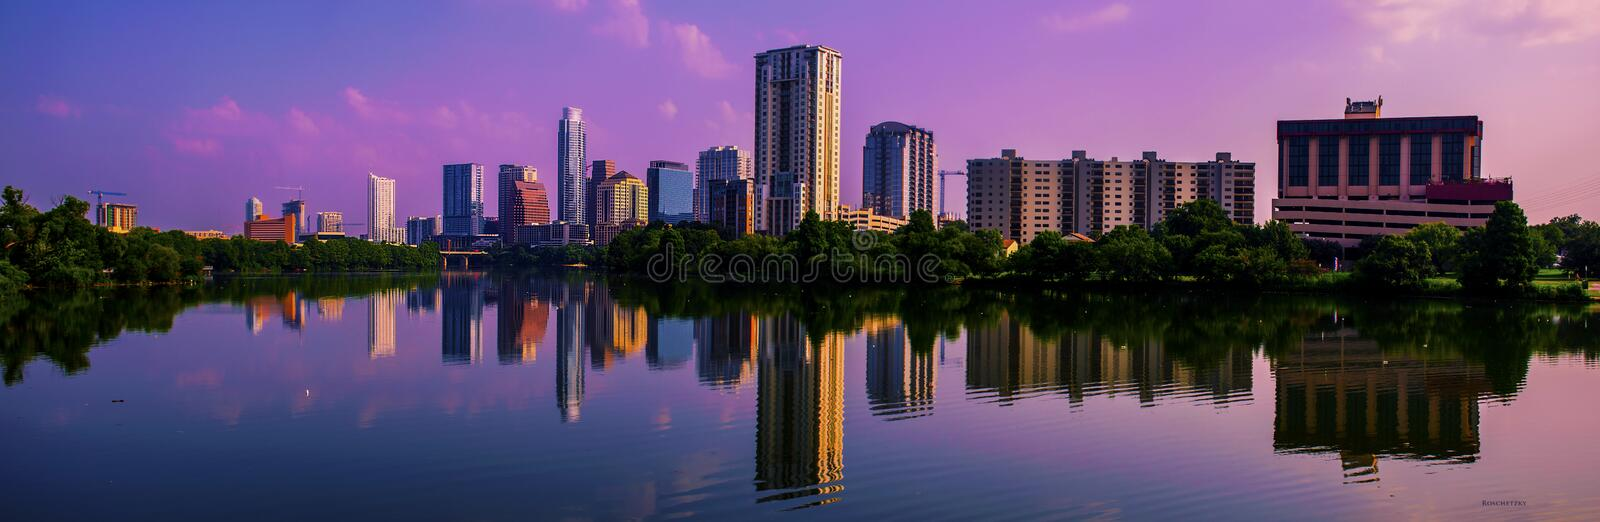 Brilliant Once in a lifetime Austin Skyline Cityscape Reflections Sunrise Pink Clouds stock photo